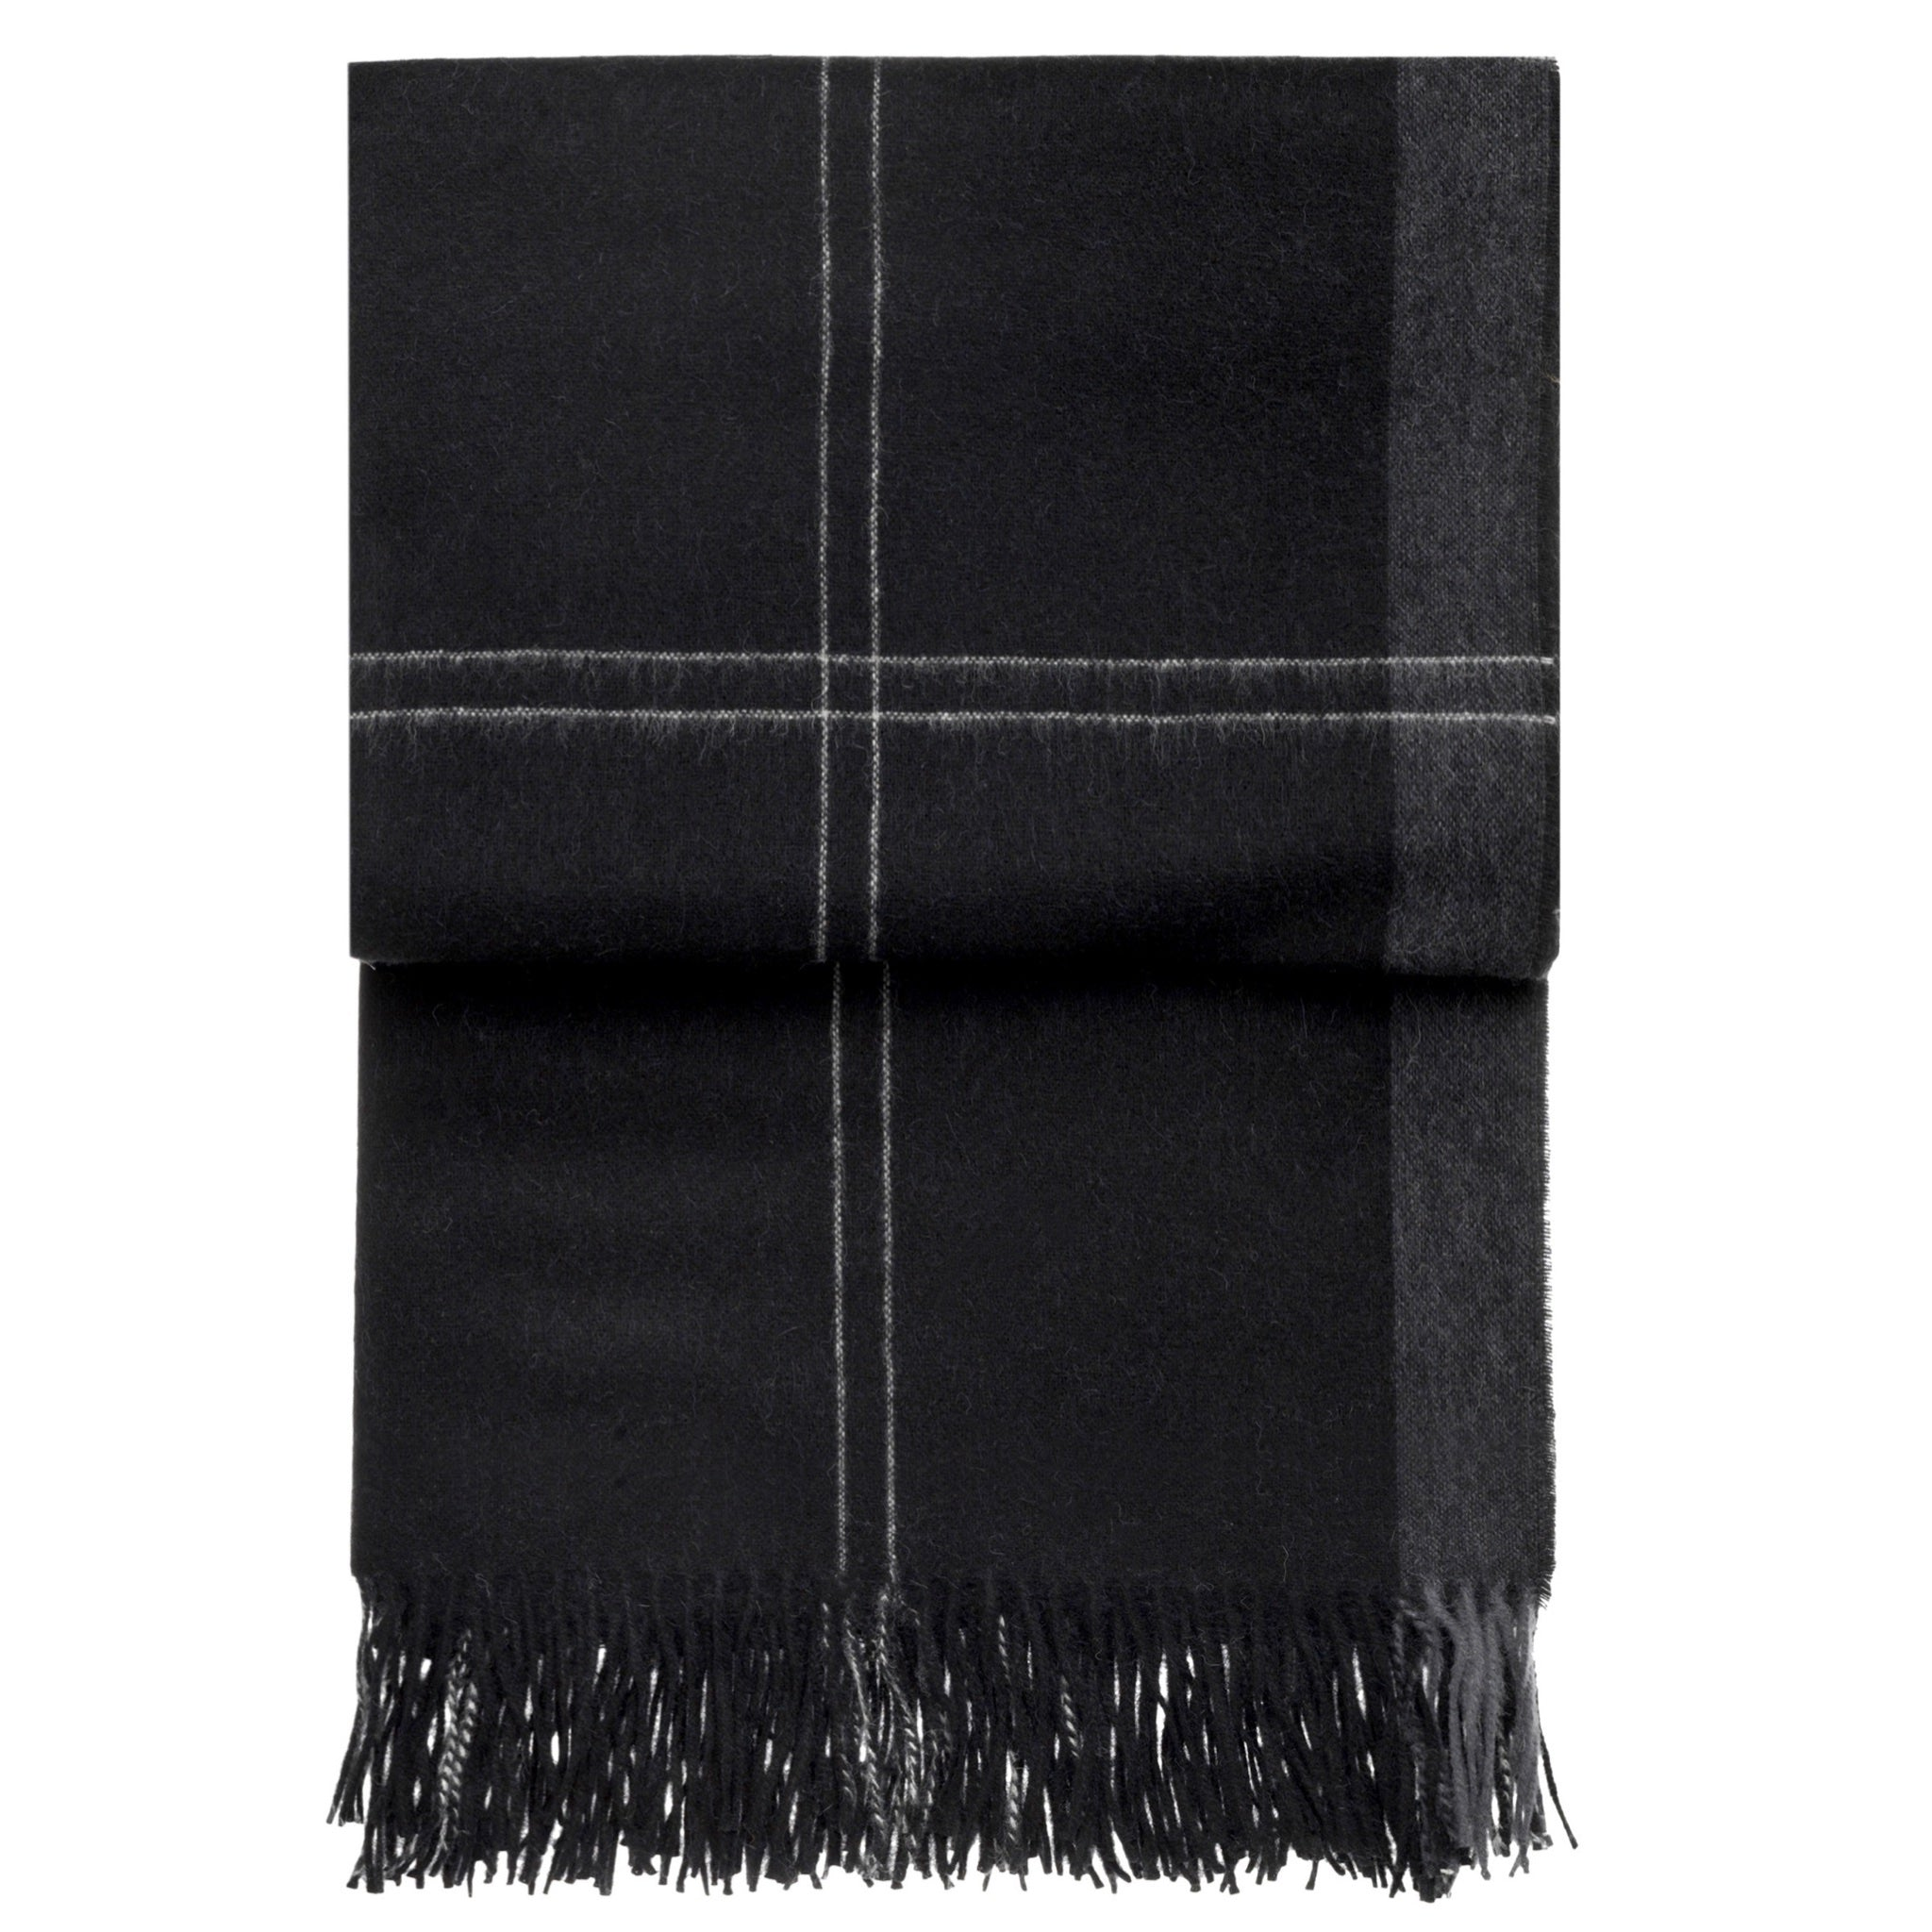 elvang latitude plaid alpaca  wool throw blanket (black)  tredoni - elvang latitude plaid alpaca  wool throw blanket (black)